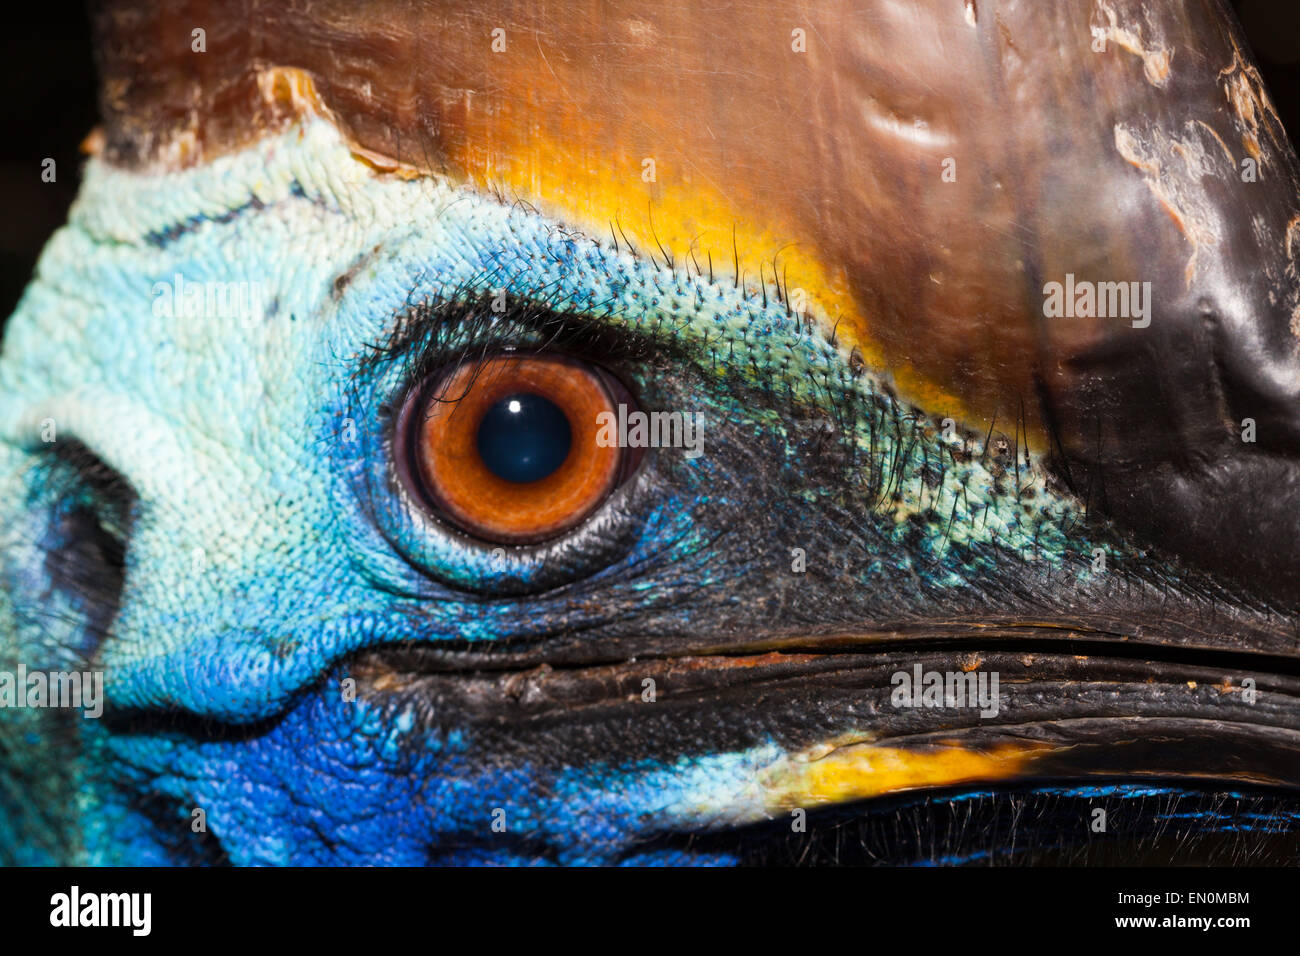 Southern Cassowary, Casuarius casuarius, Queensland, Australia Stock Photo